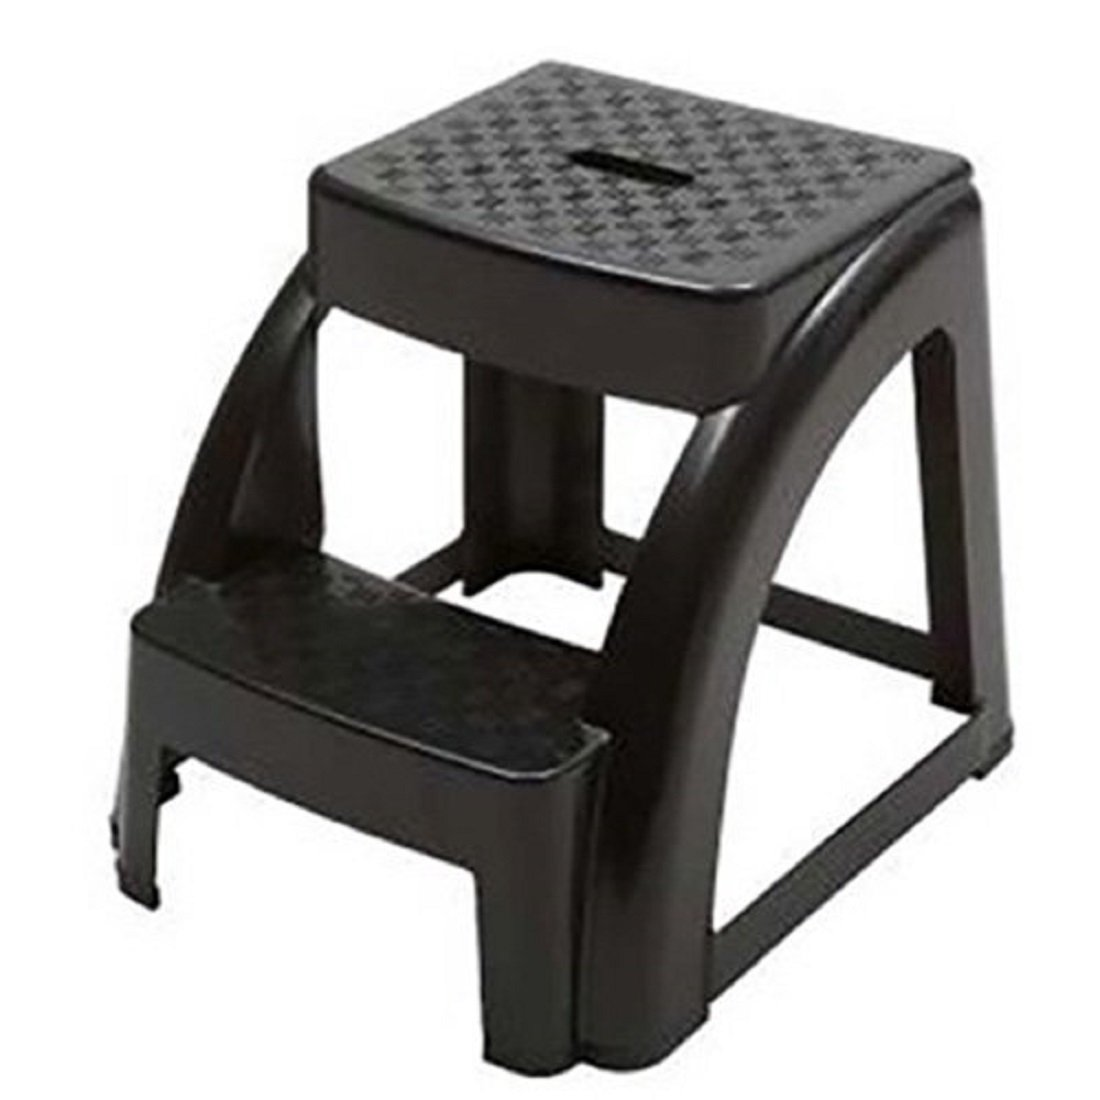 NTM 2-STEP ANTI-SLIP BLACK STEP STOOL - 250 LB. LOAD CAPACITY - 18'' L x 16'' W x 15'' H by NTM